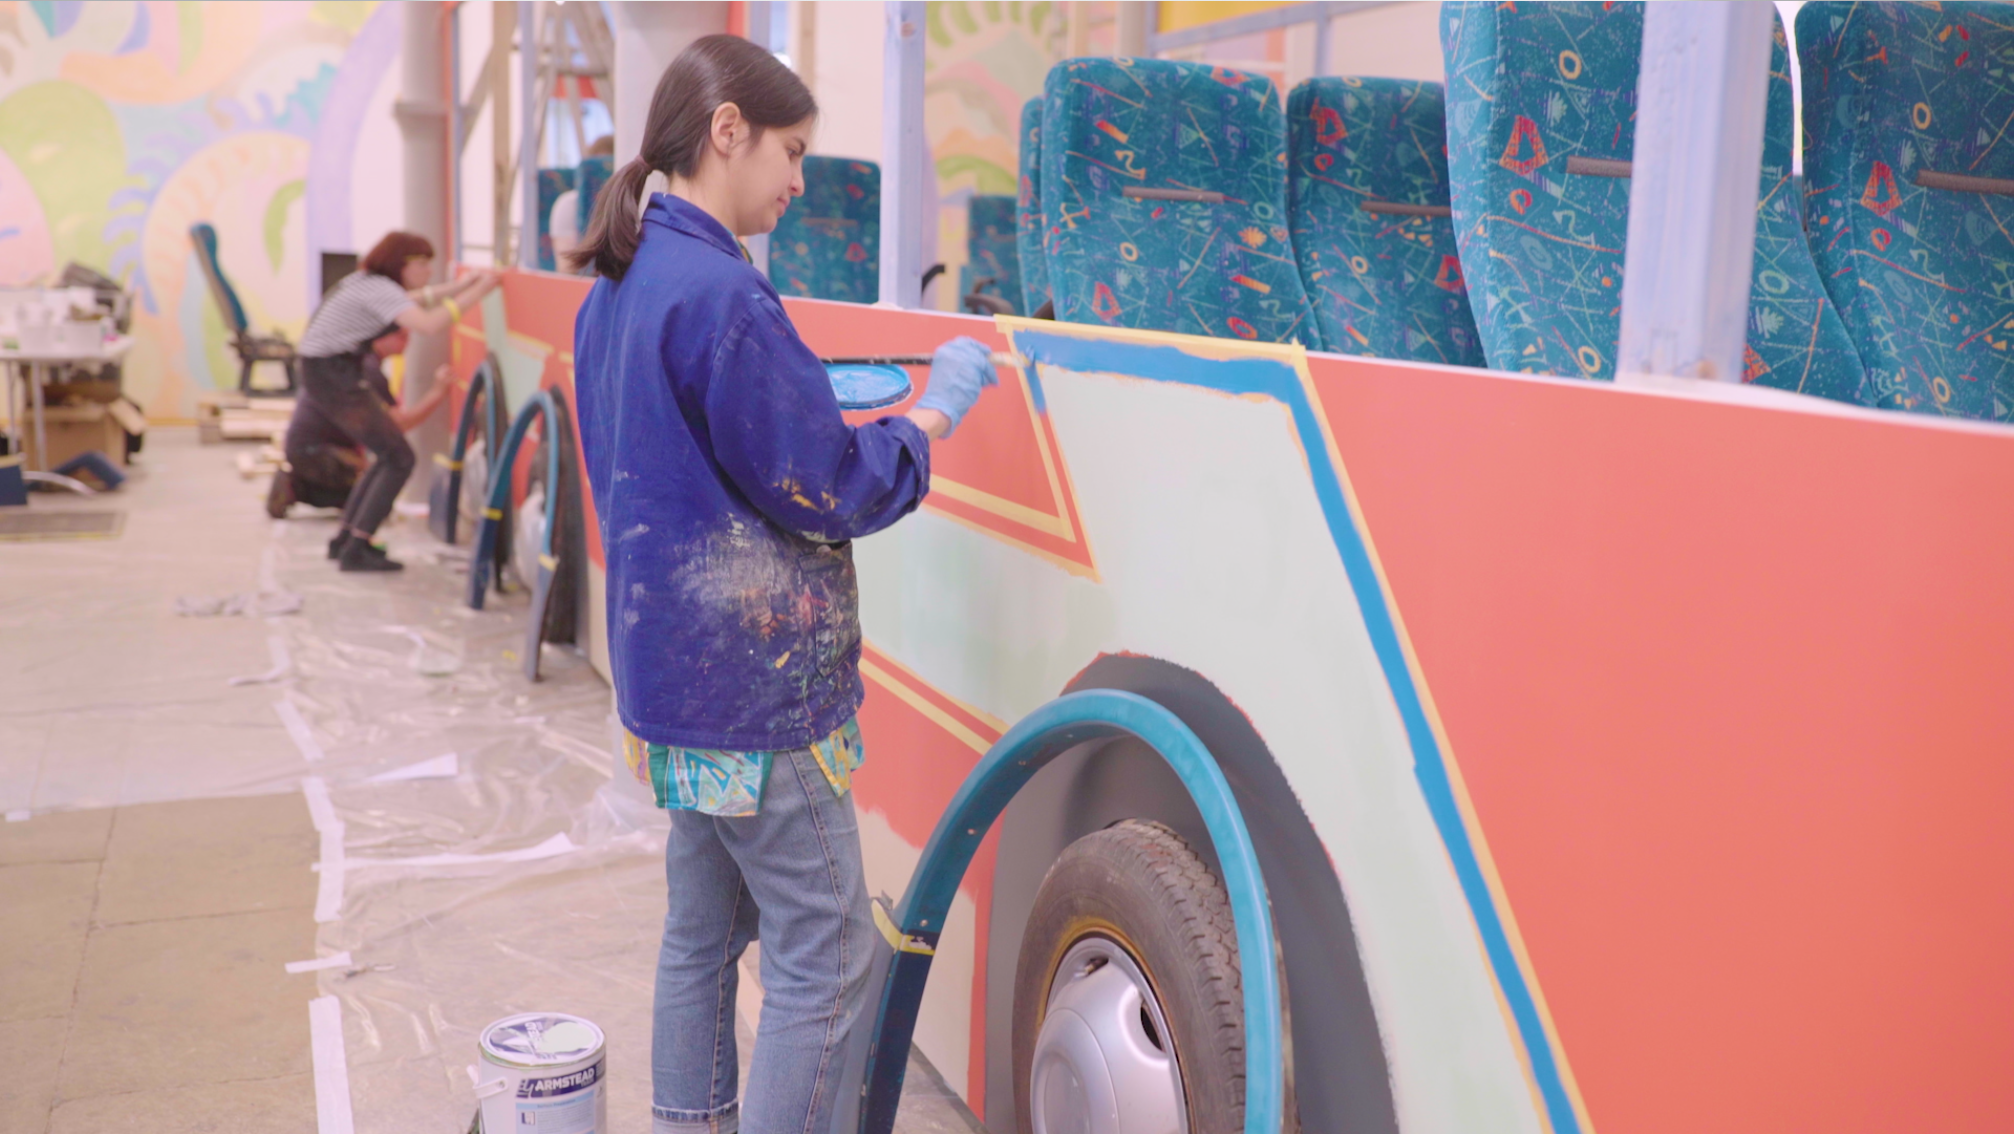 Sol Calero installing El Autobús. Artwork © Sol Calero. Image courtesy of Tate, Tate Digital, 2019